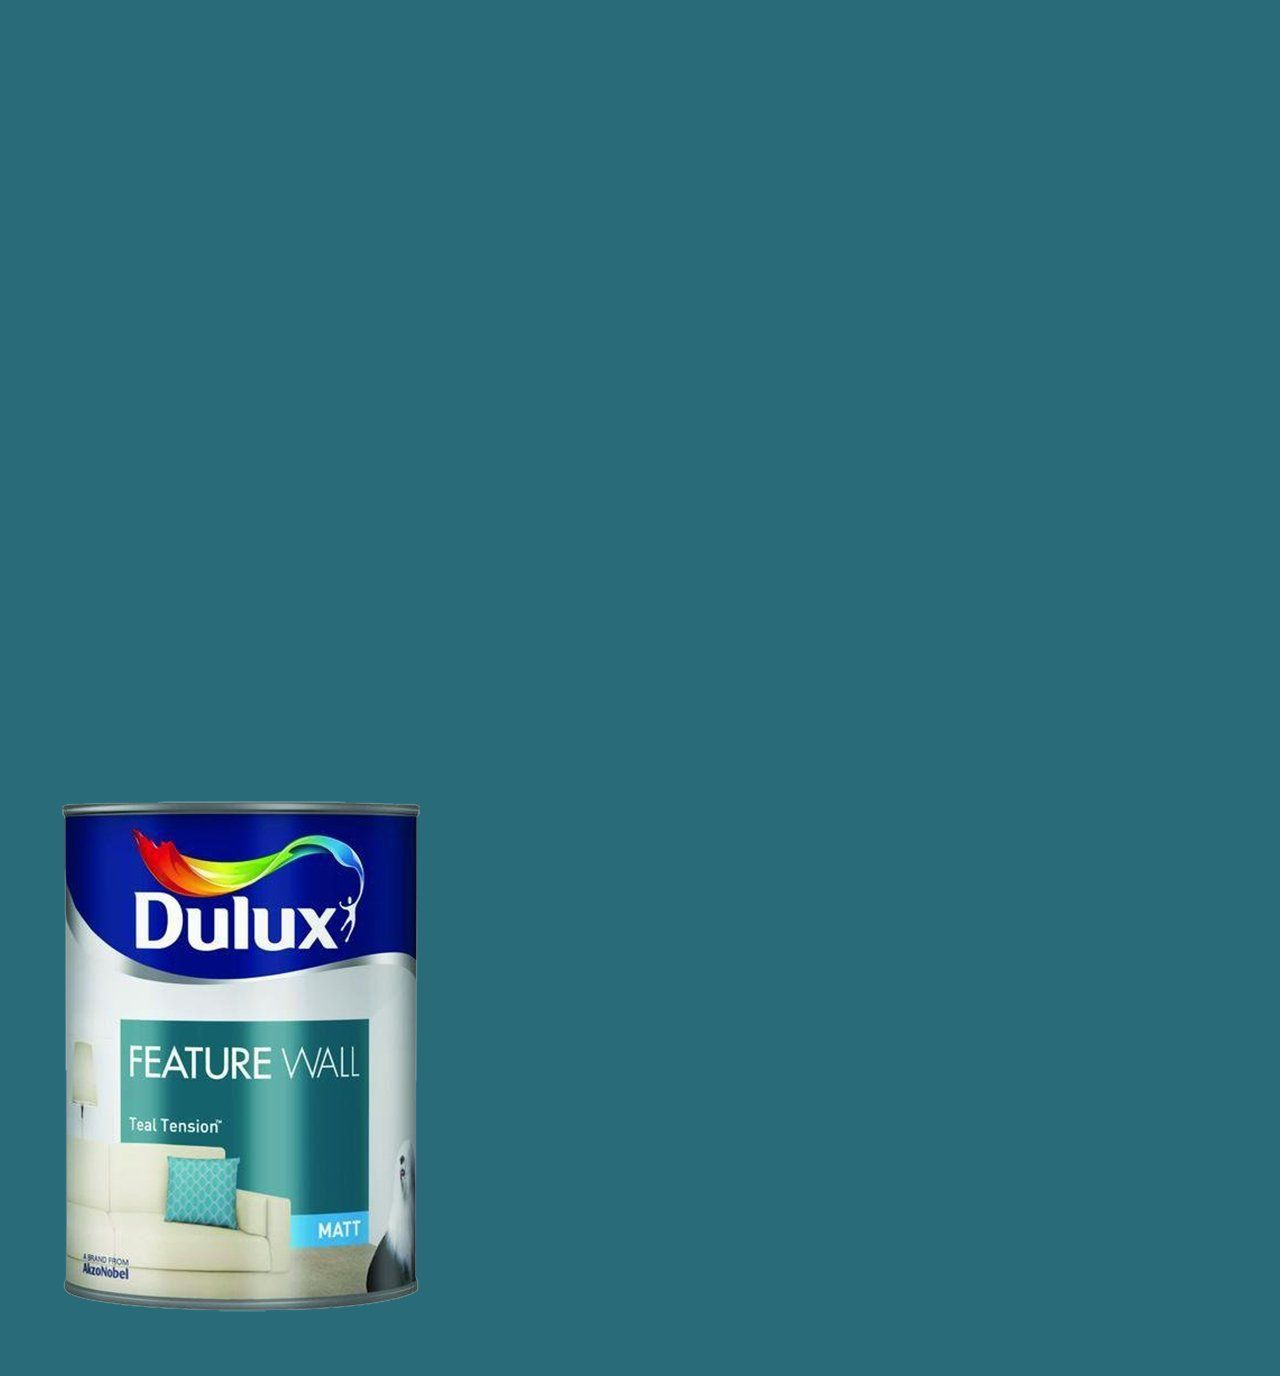 Dulux Feature Wall Paint Teal Tension Amazon Co Uk Diy Tools